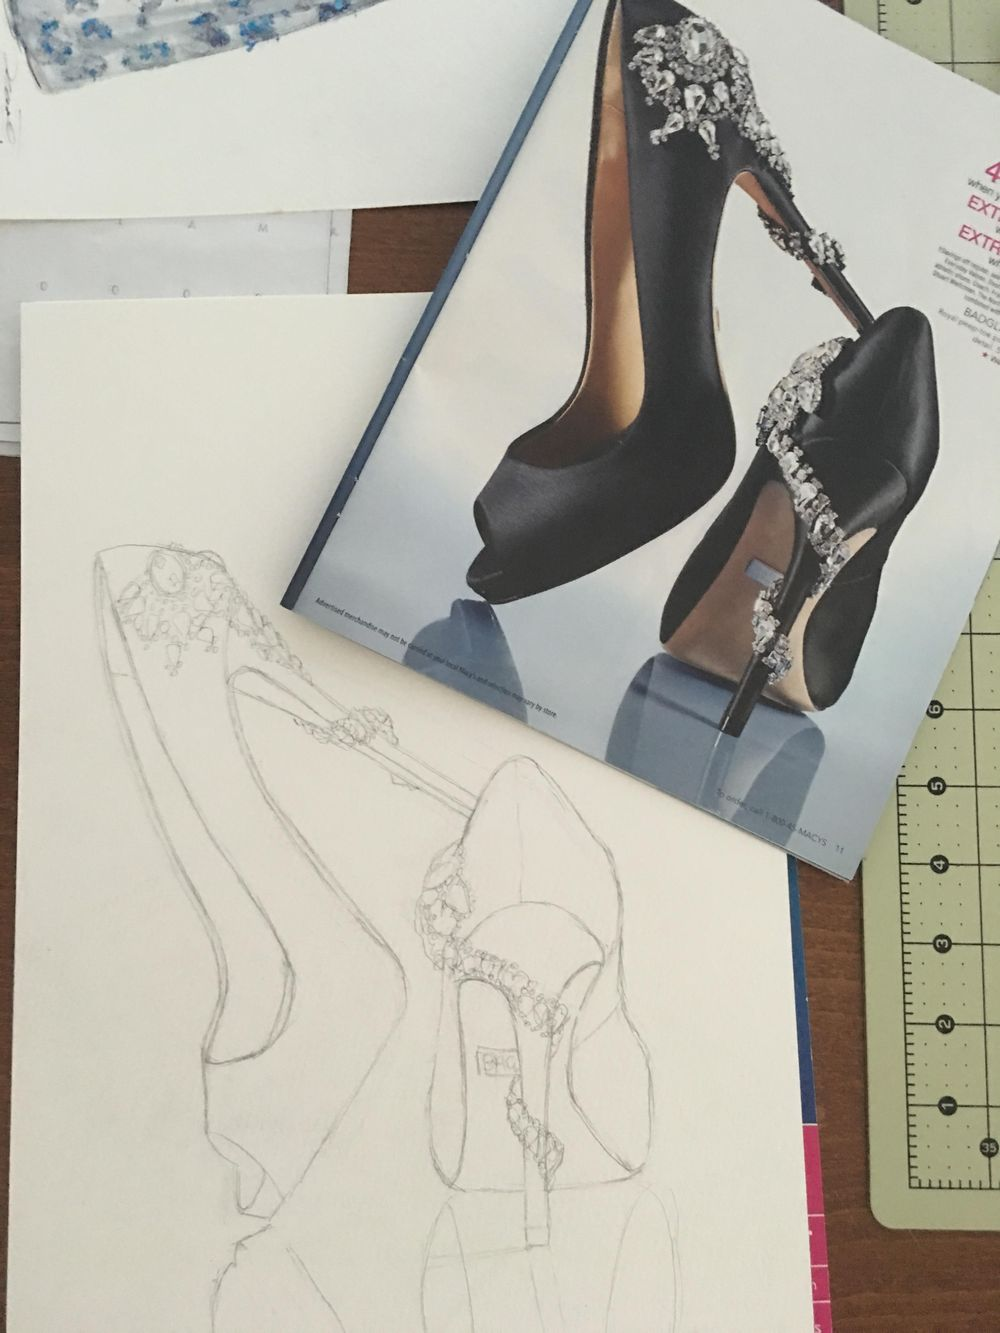 Basic Watercolor - Illustrate Shoes - image 2 - student project